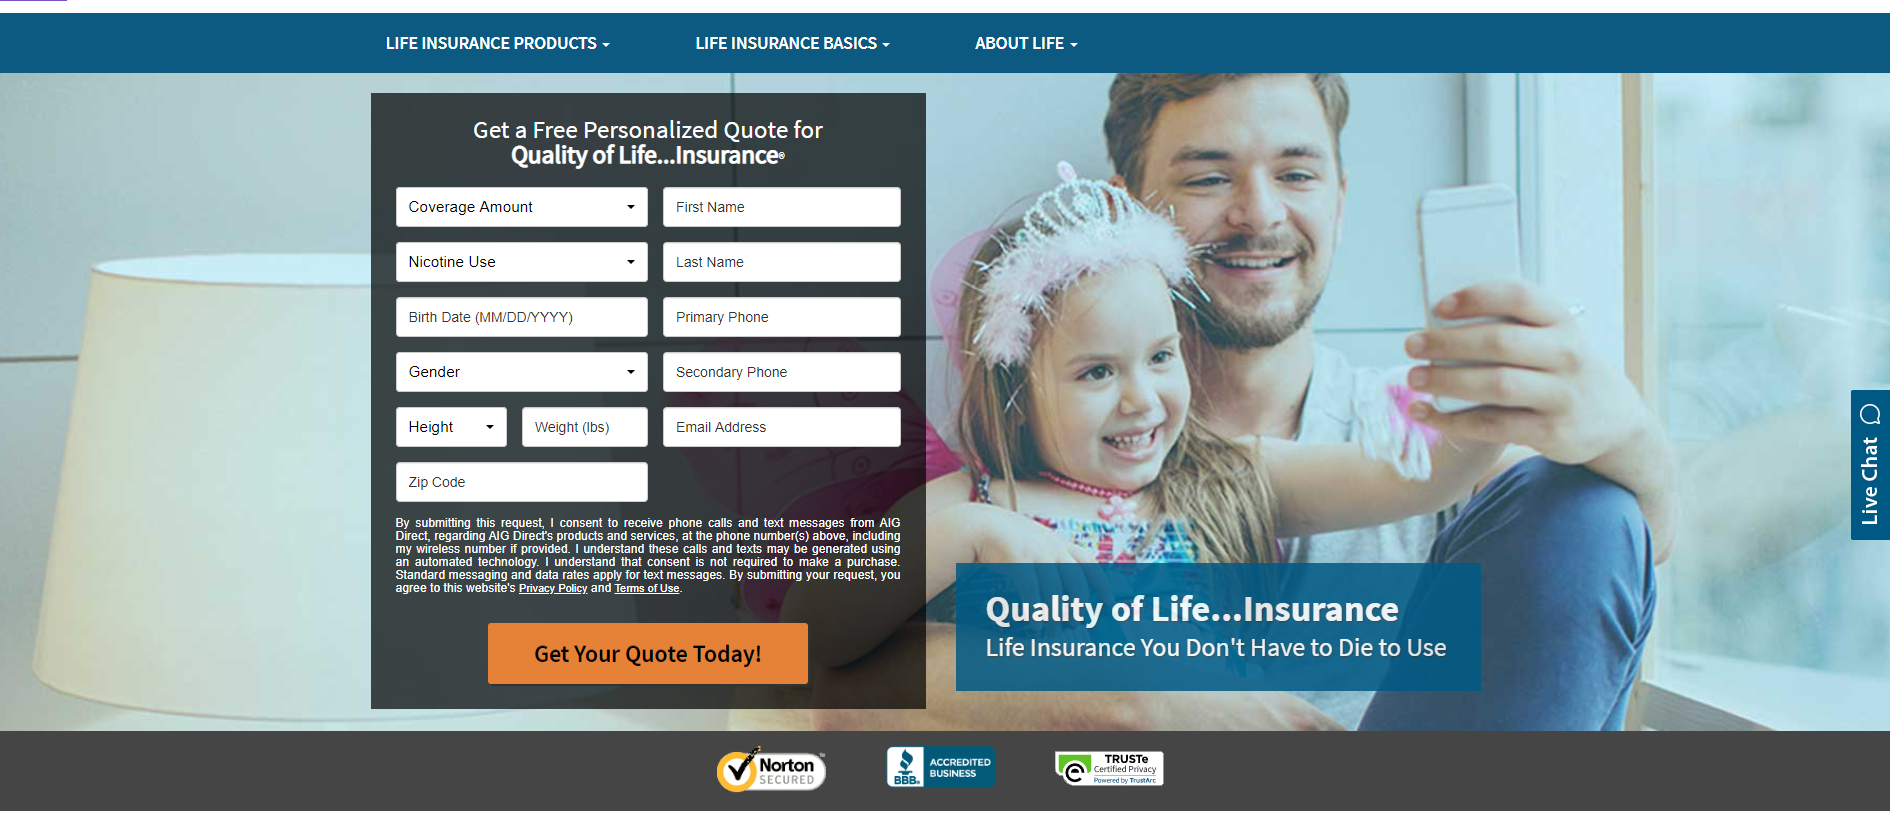 AIG website get a quote quality of life